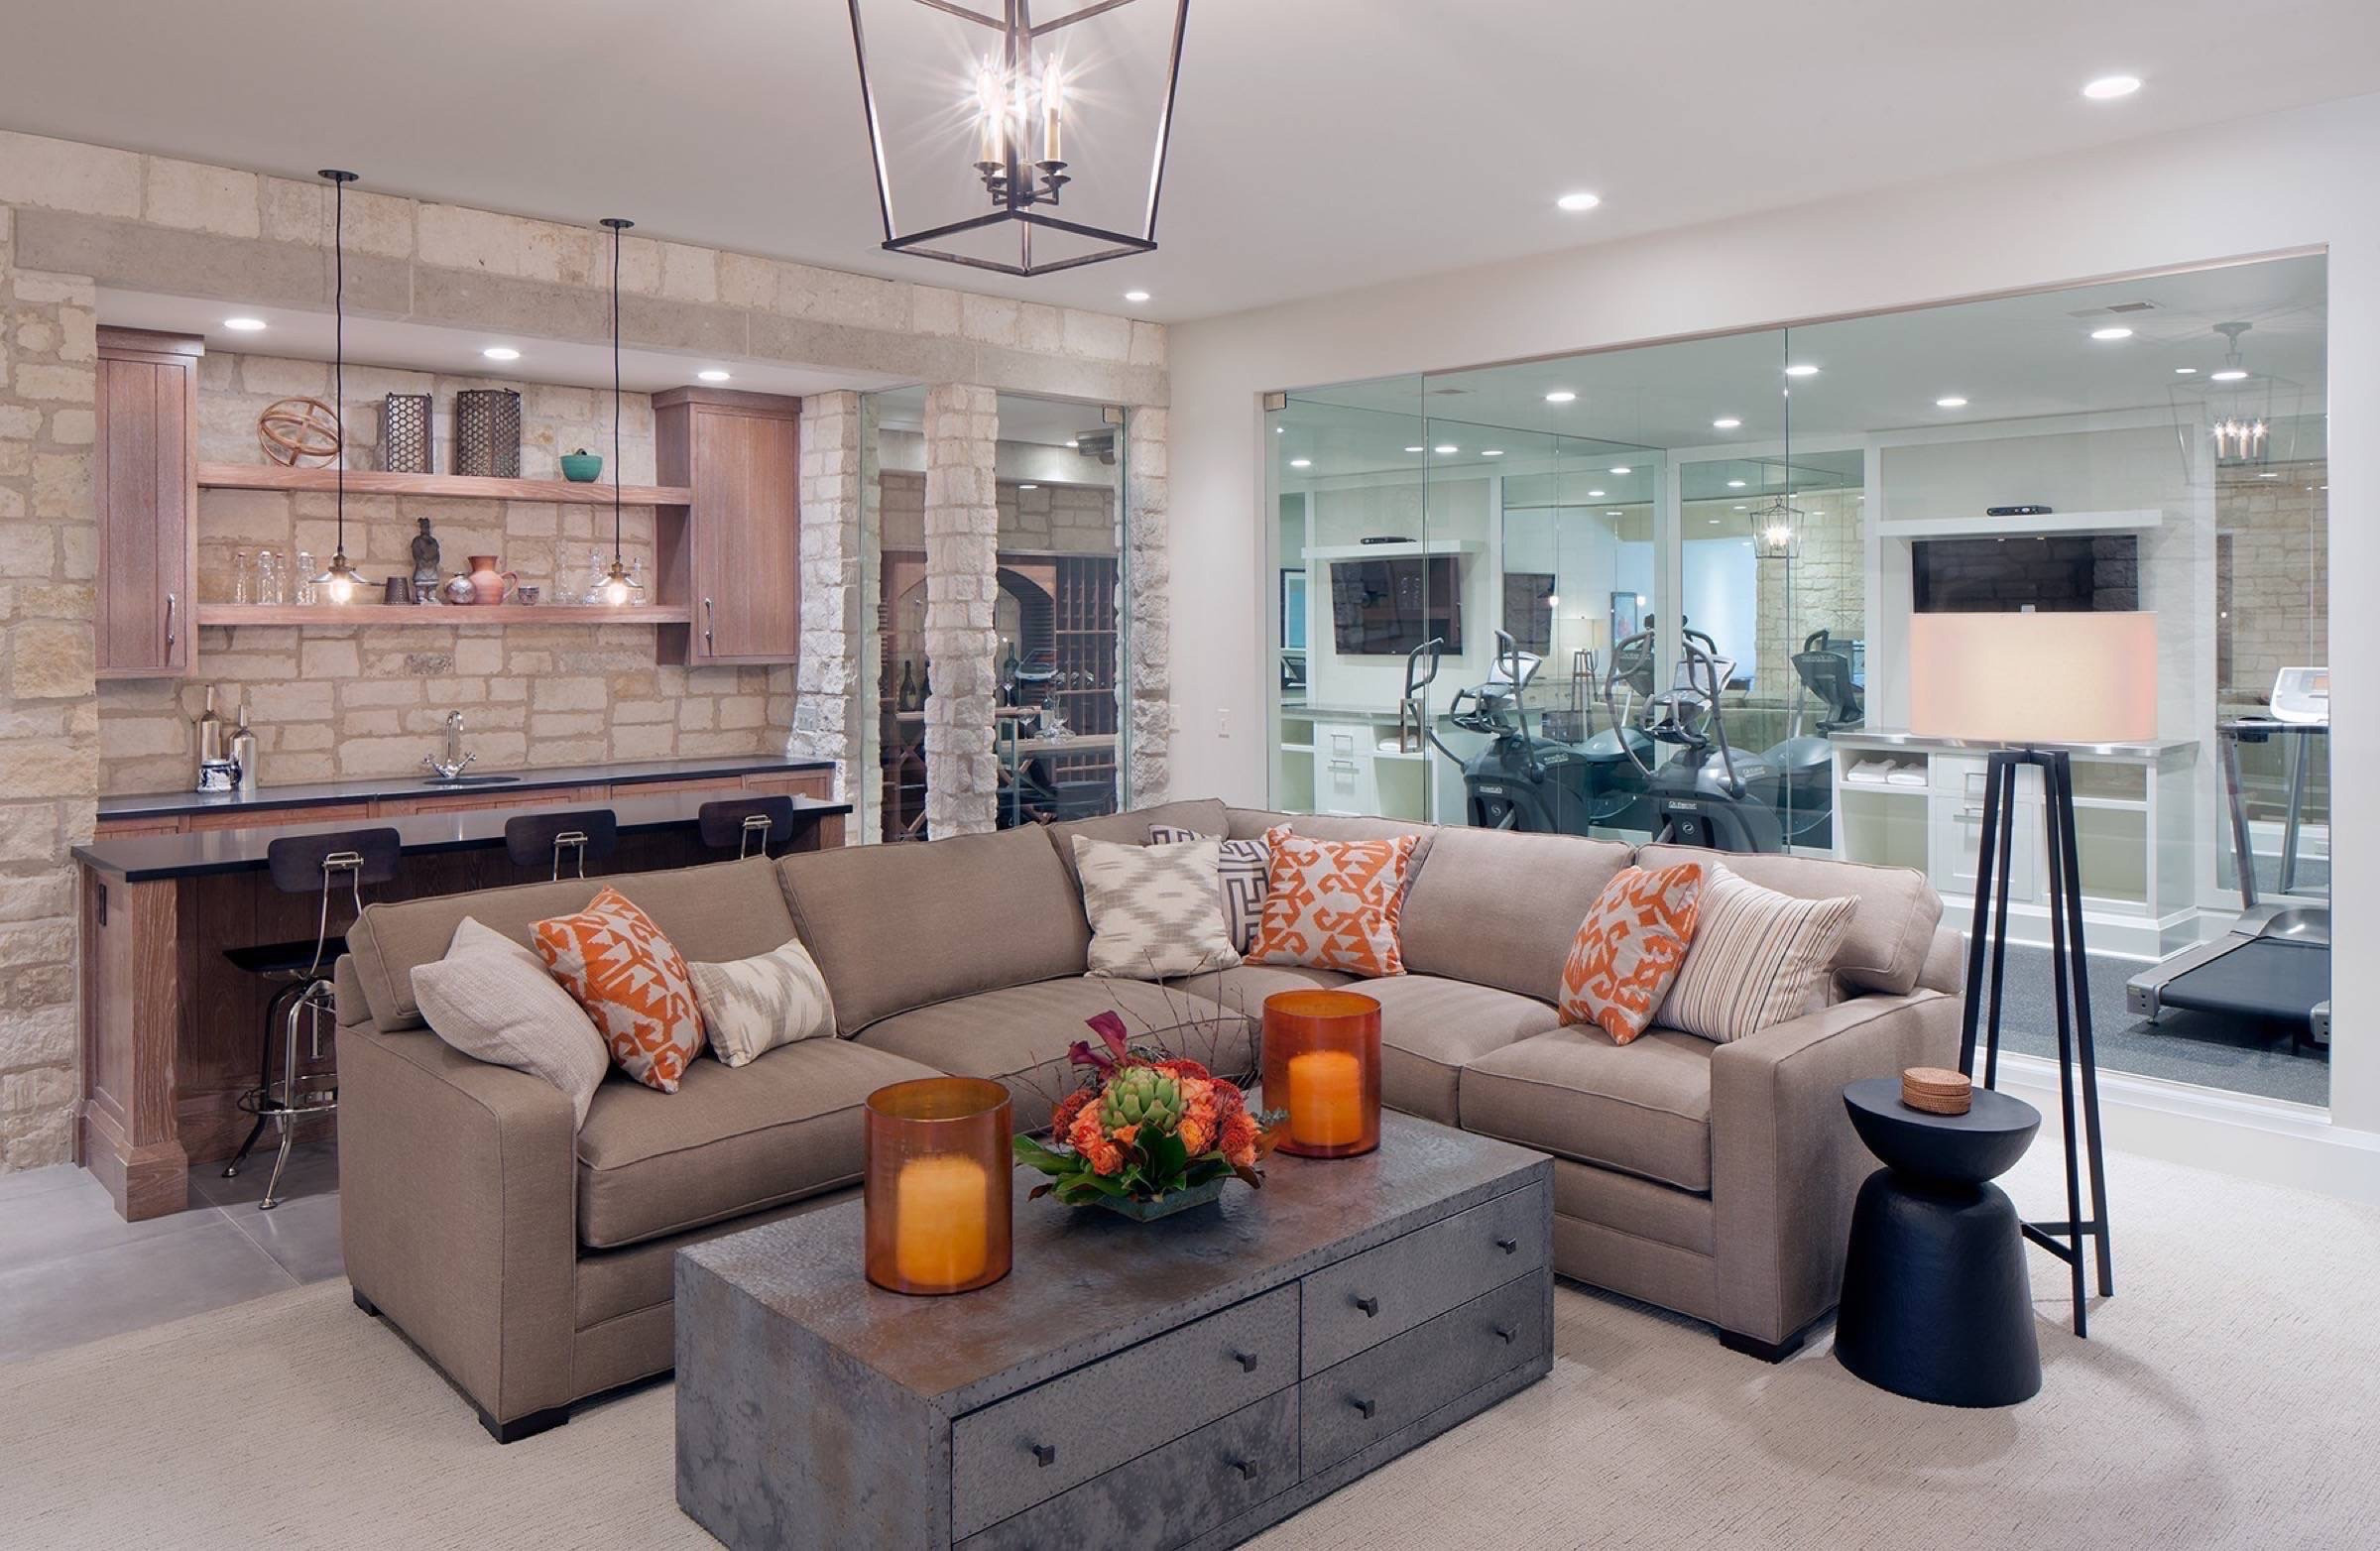 Best ideas about Basement Family Room Ideas . Save or Pin Basement Family Room Ideas Basement Masters Now.